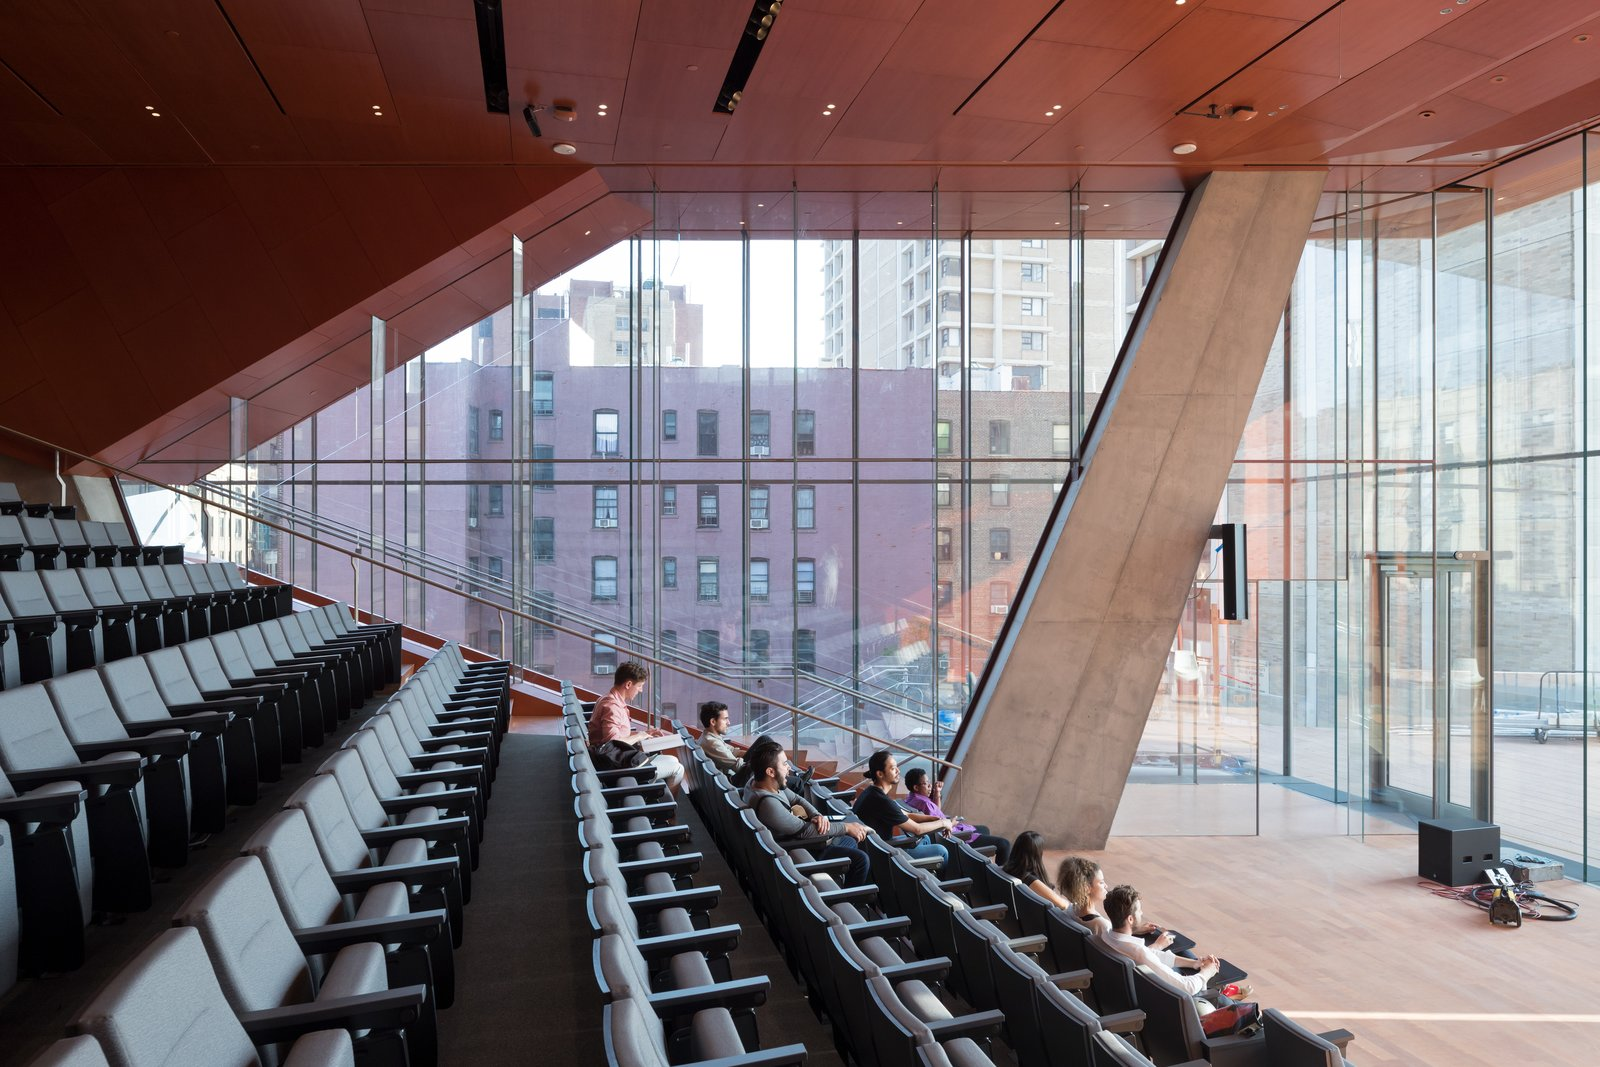 The auditorium includes 275 seats for lectures and concerts. Design Diagnosis: Back to School - Photo 4 of 4